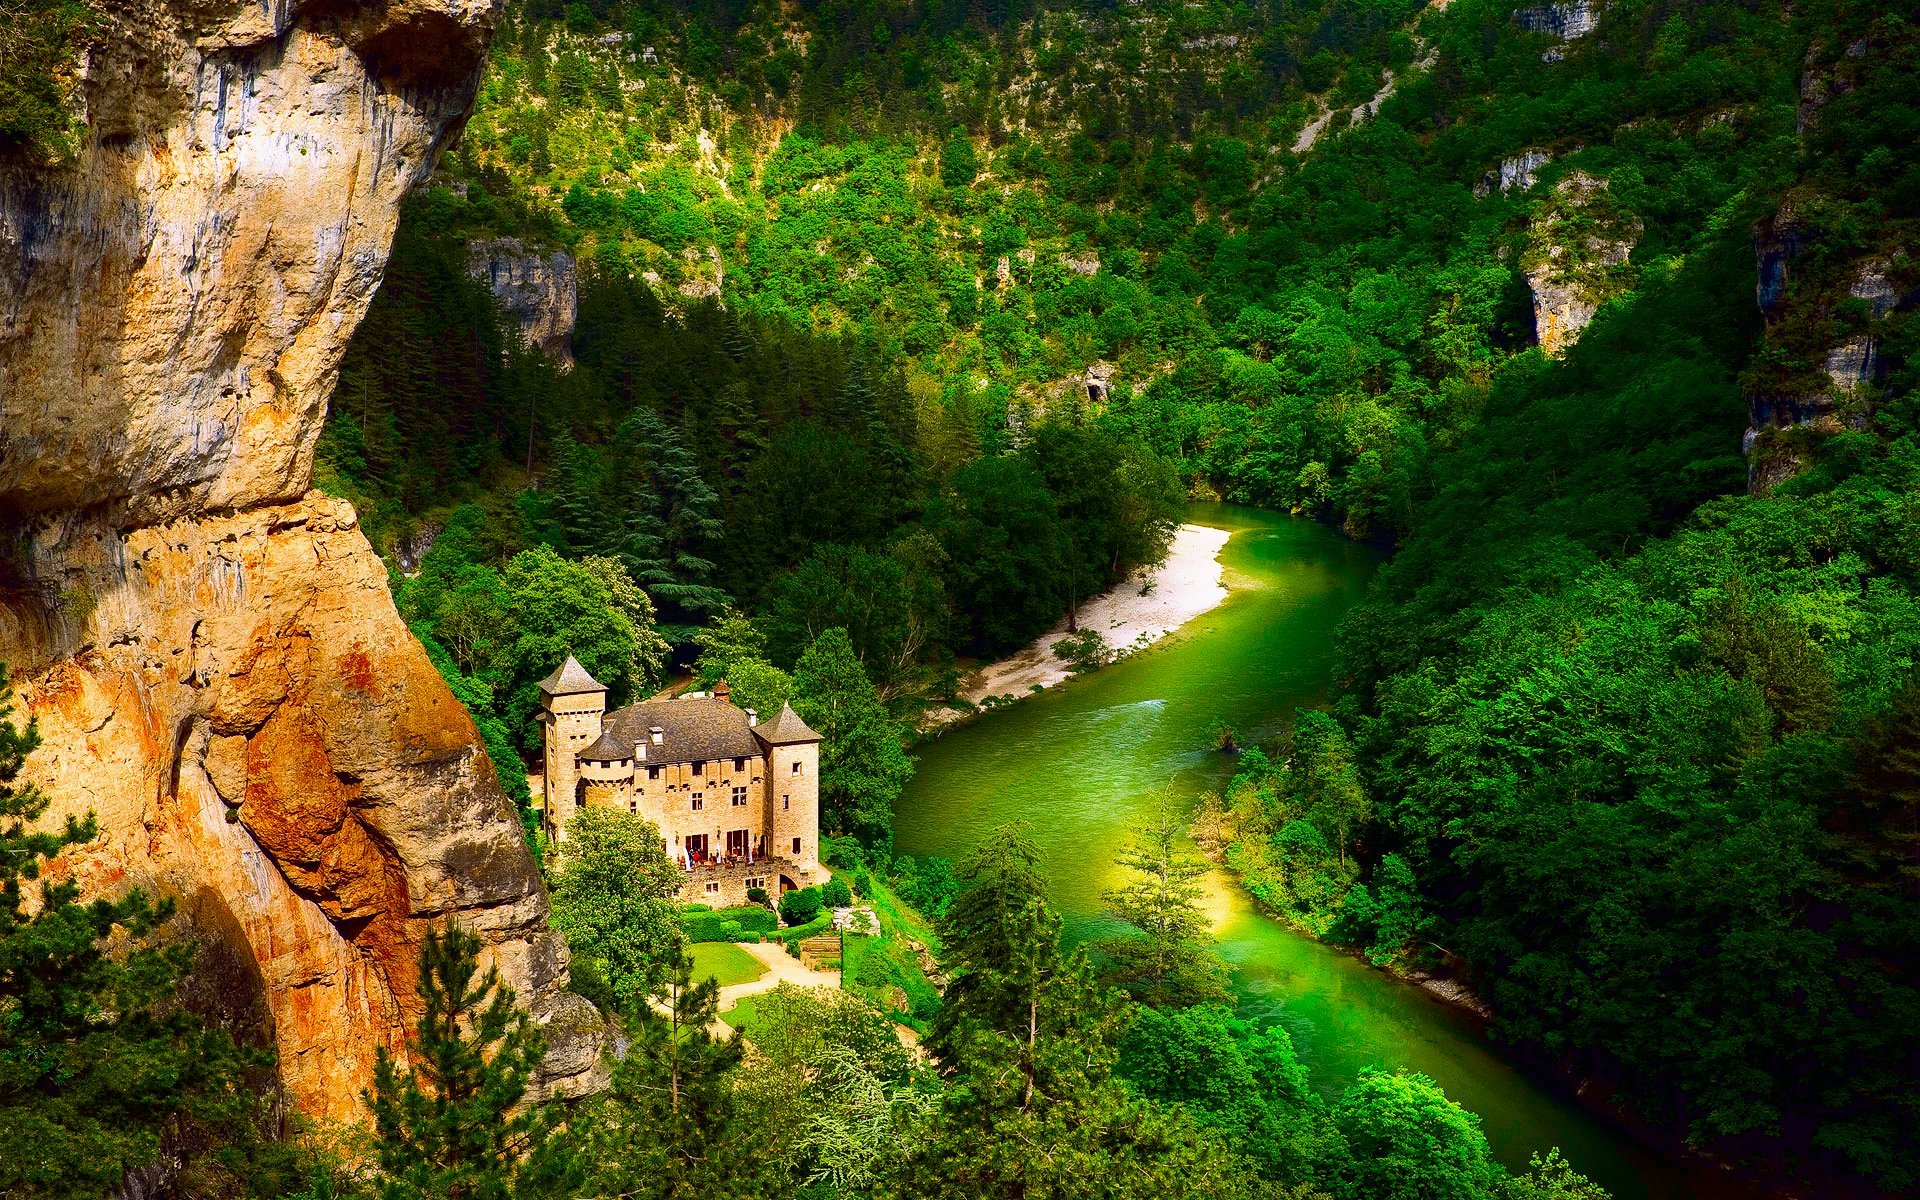 france-laval-castle-river-mountain-forest.jpg